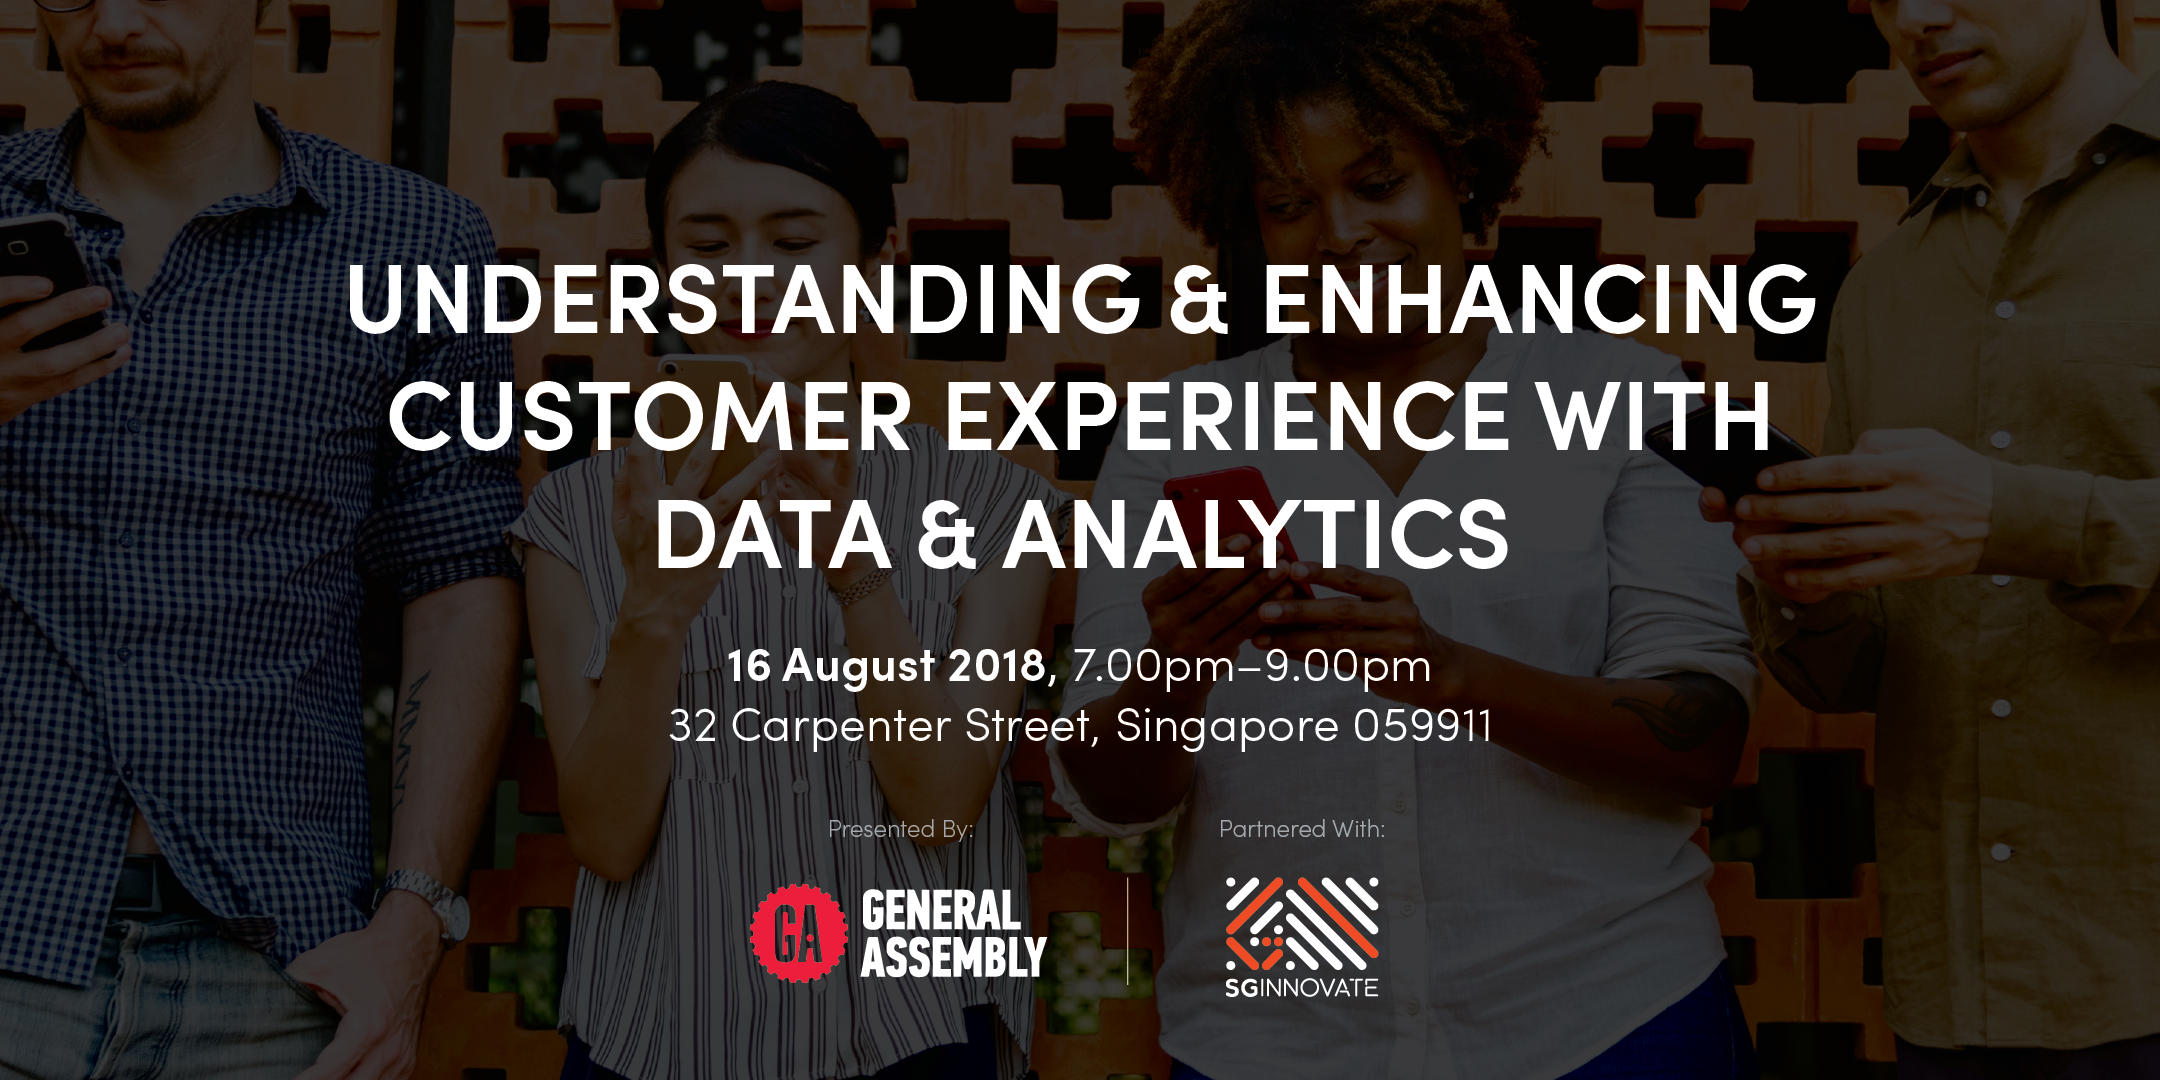 Understanding & Enhancing Customer Experience With Data